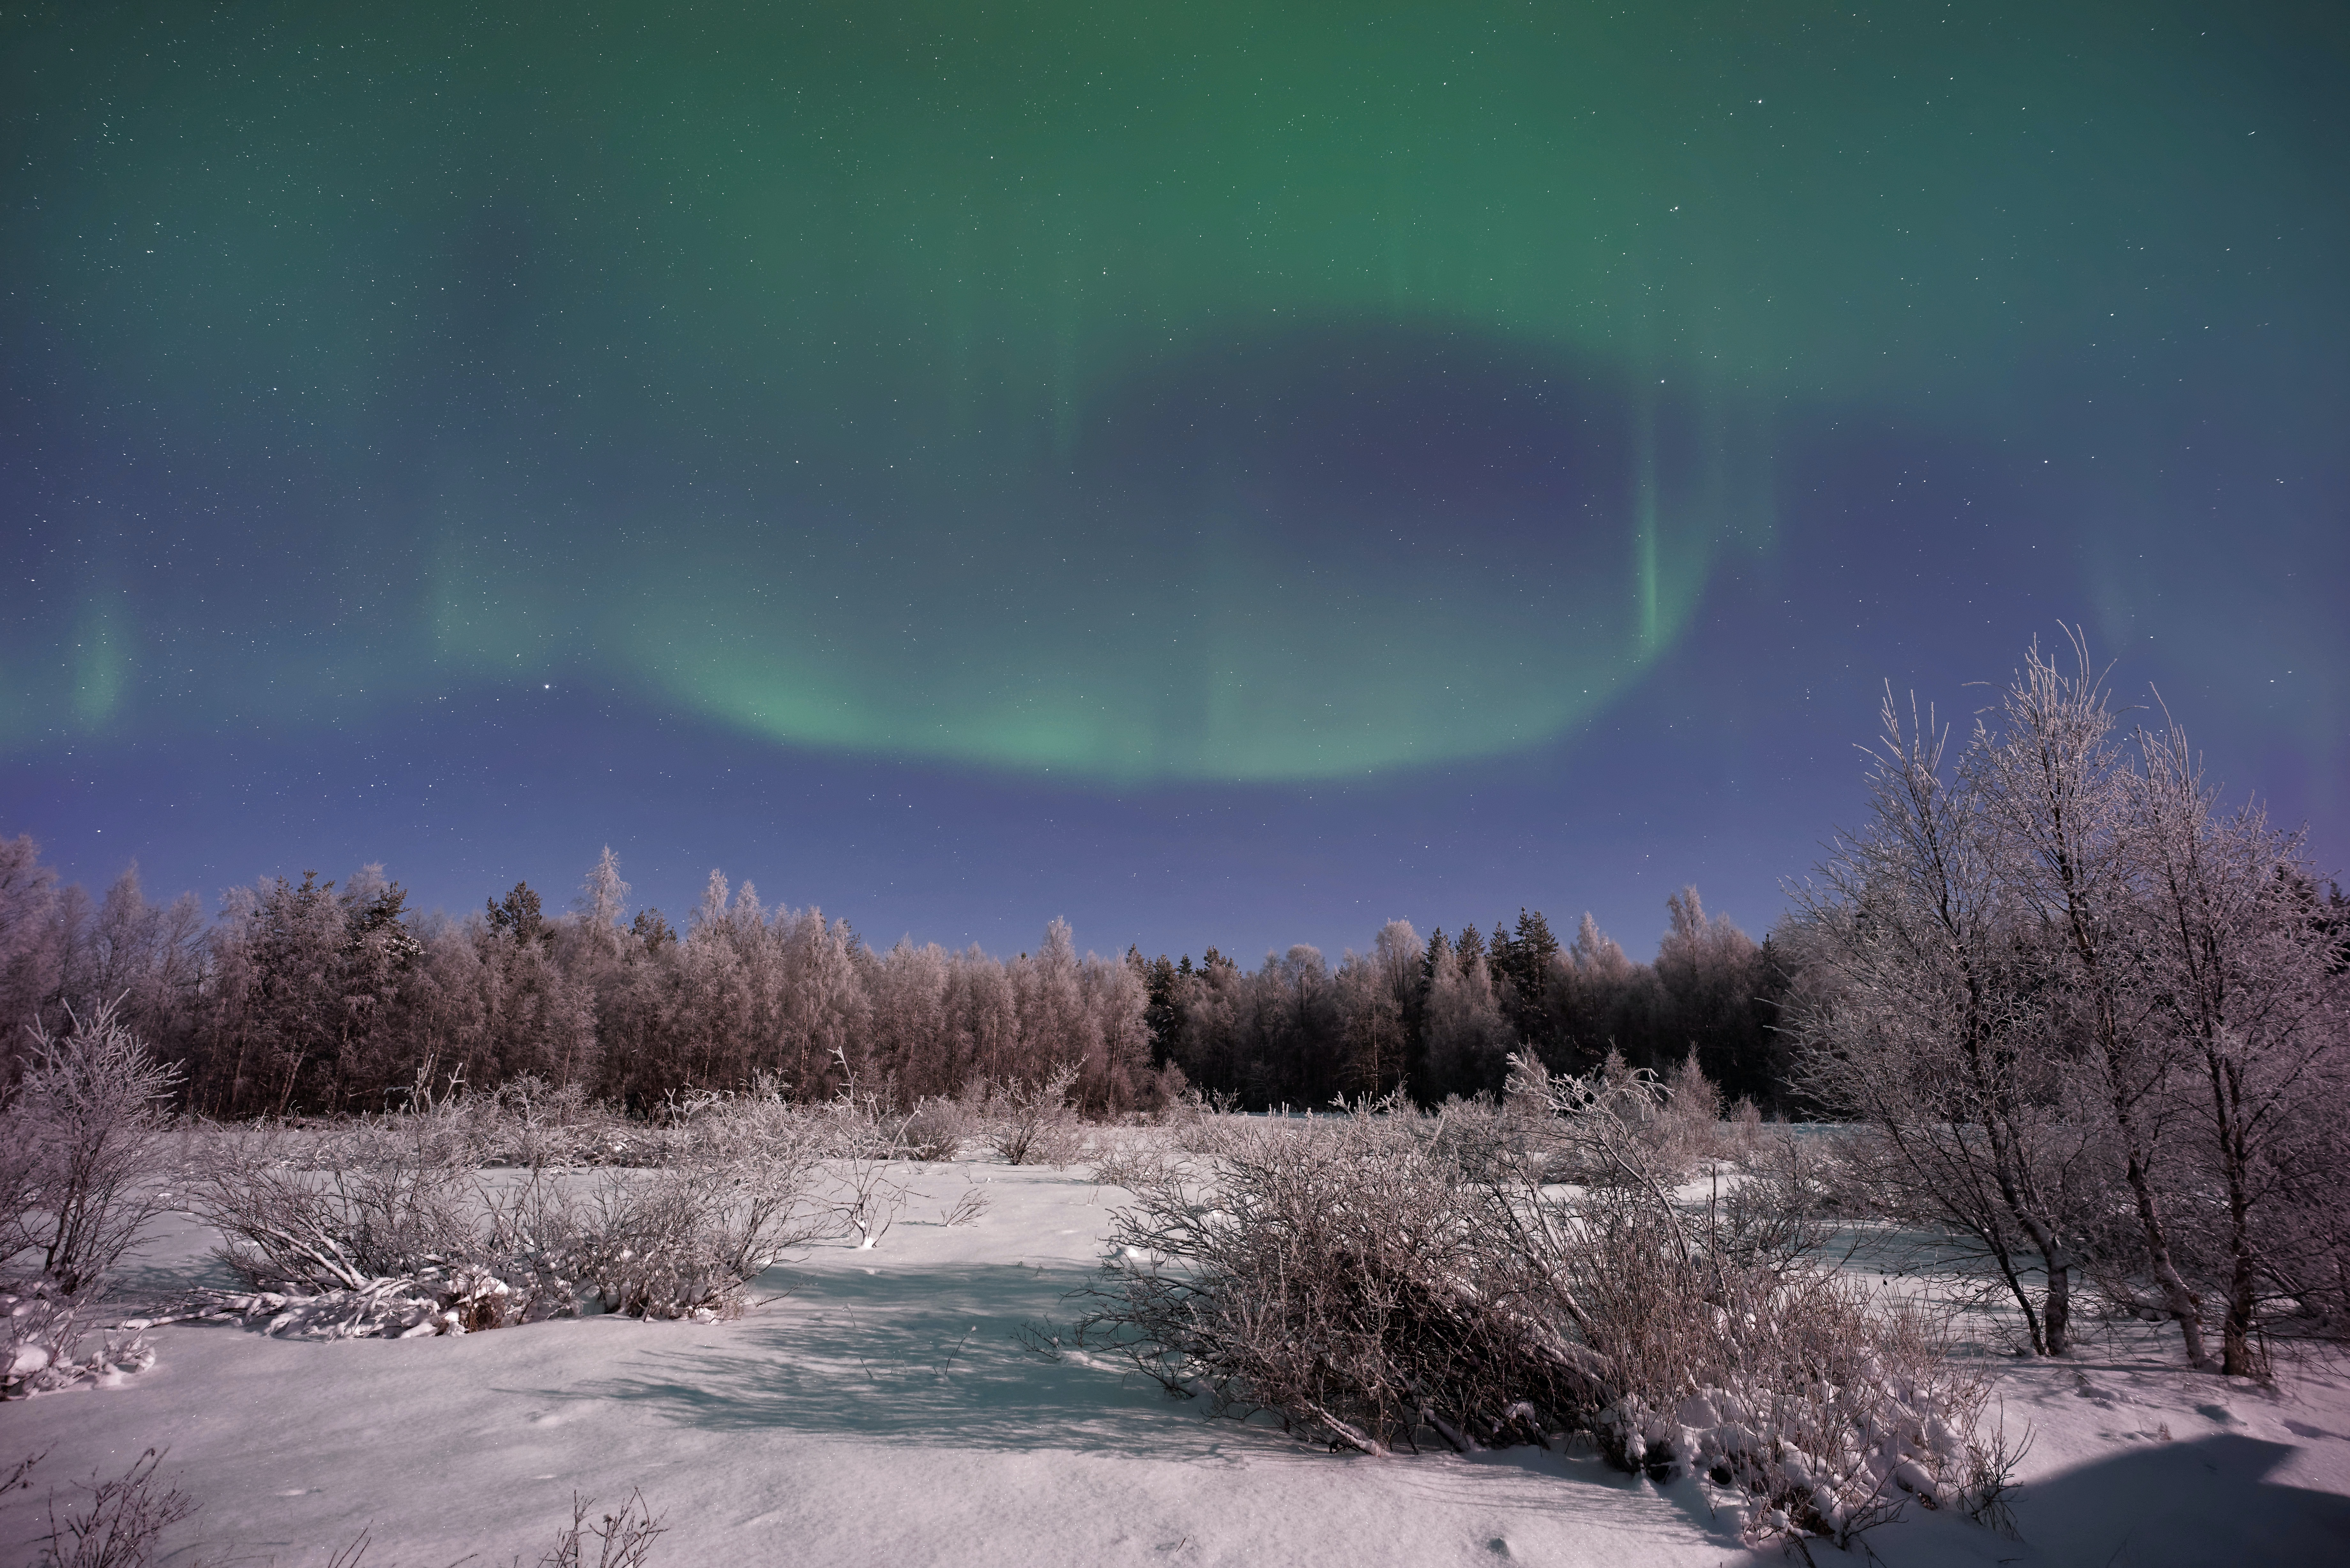 Aurora borealis in the sky over a snowy tree-lined field in Lapland